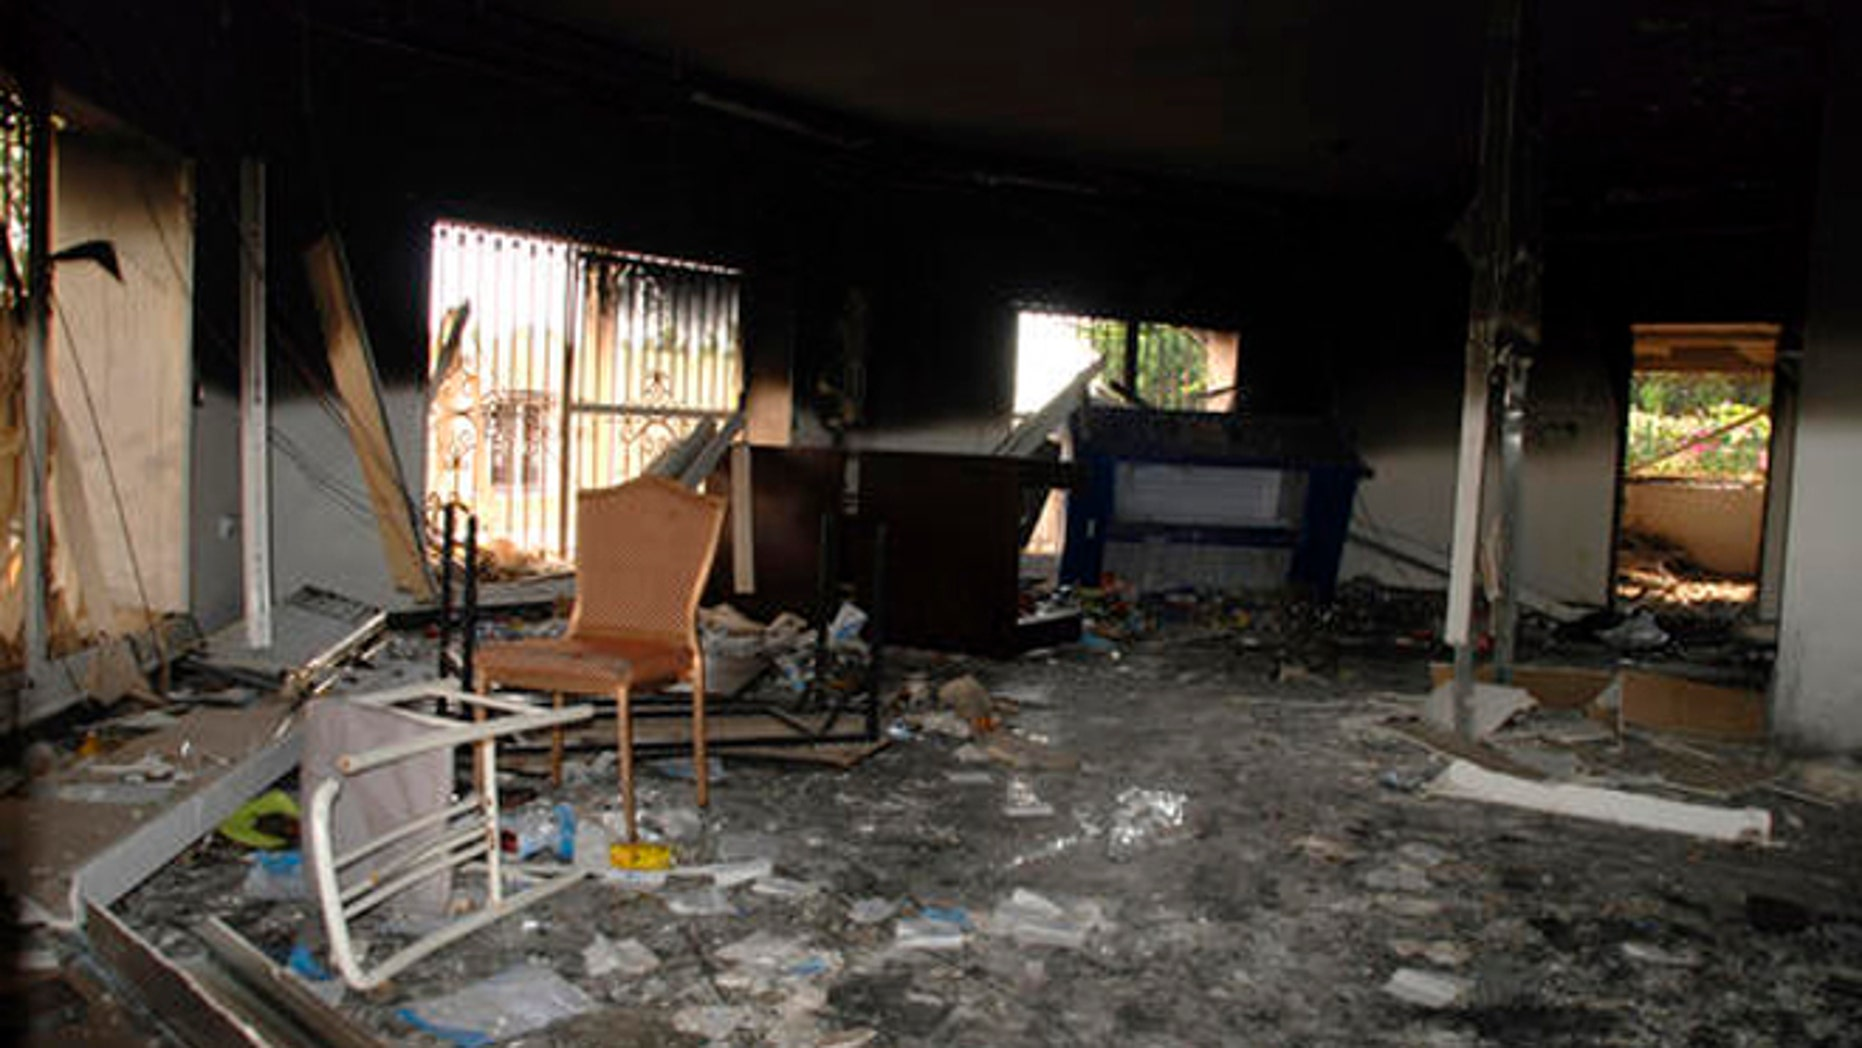 In this Sept. 12, 2012 file photo, glass, debris and overturned furniture are strewn inside a room in the gutted U.S. consulate in Benghazi, Libya, after an attack that killed four Americans, including Ambassador Chris Stevens.